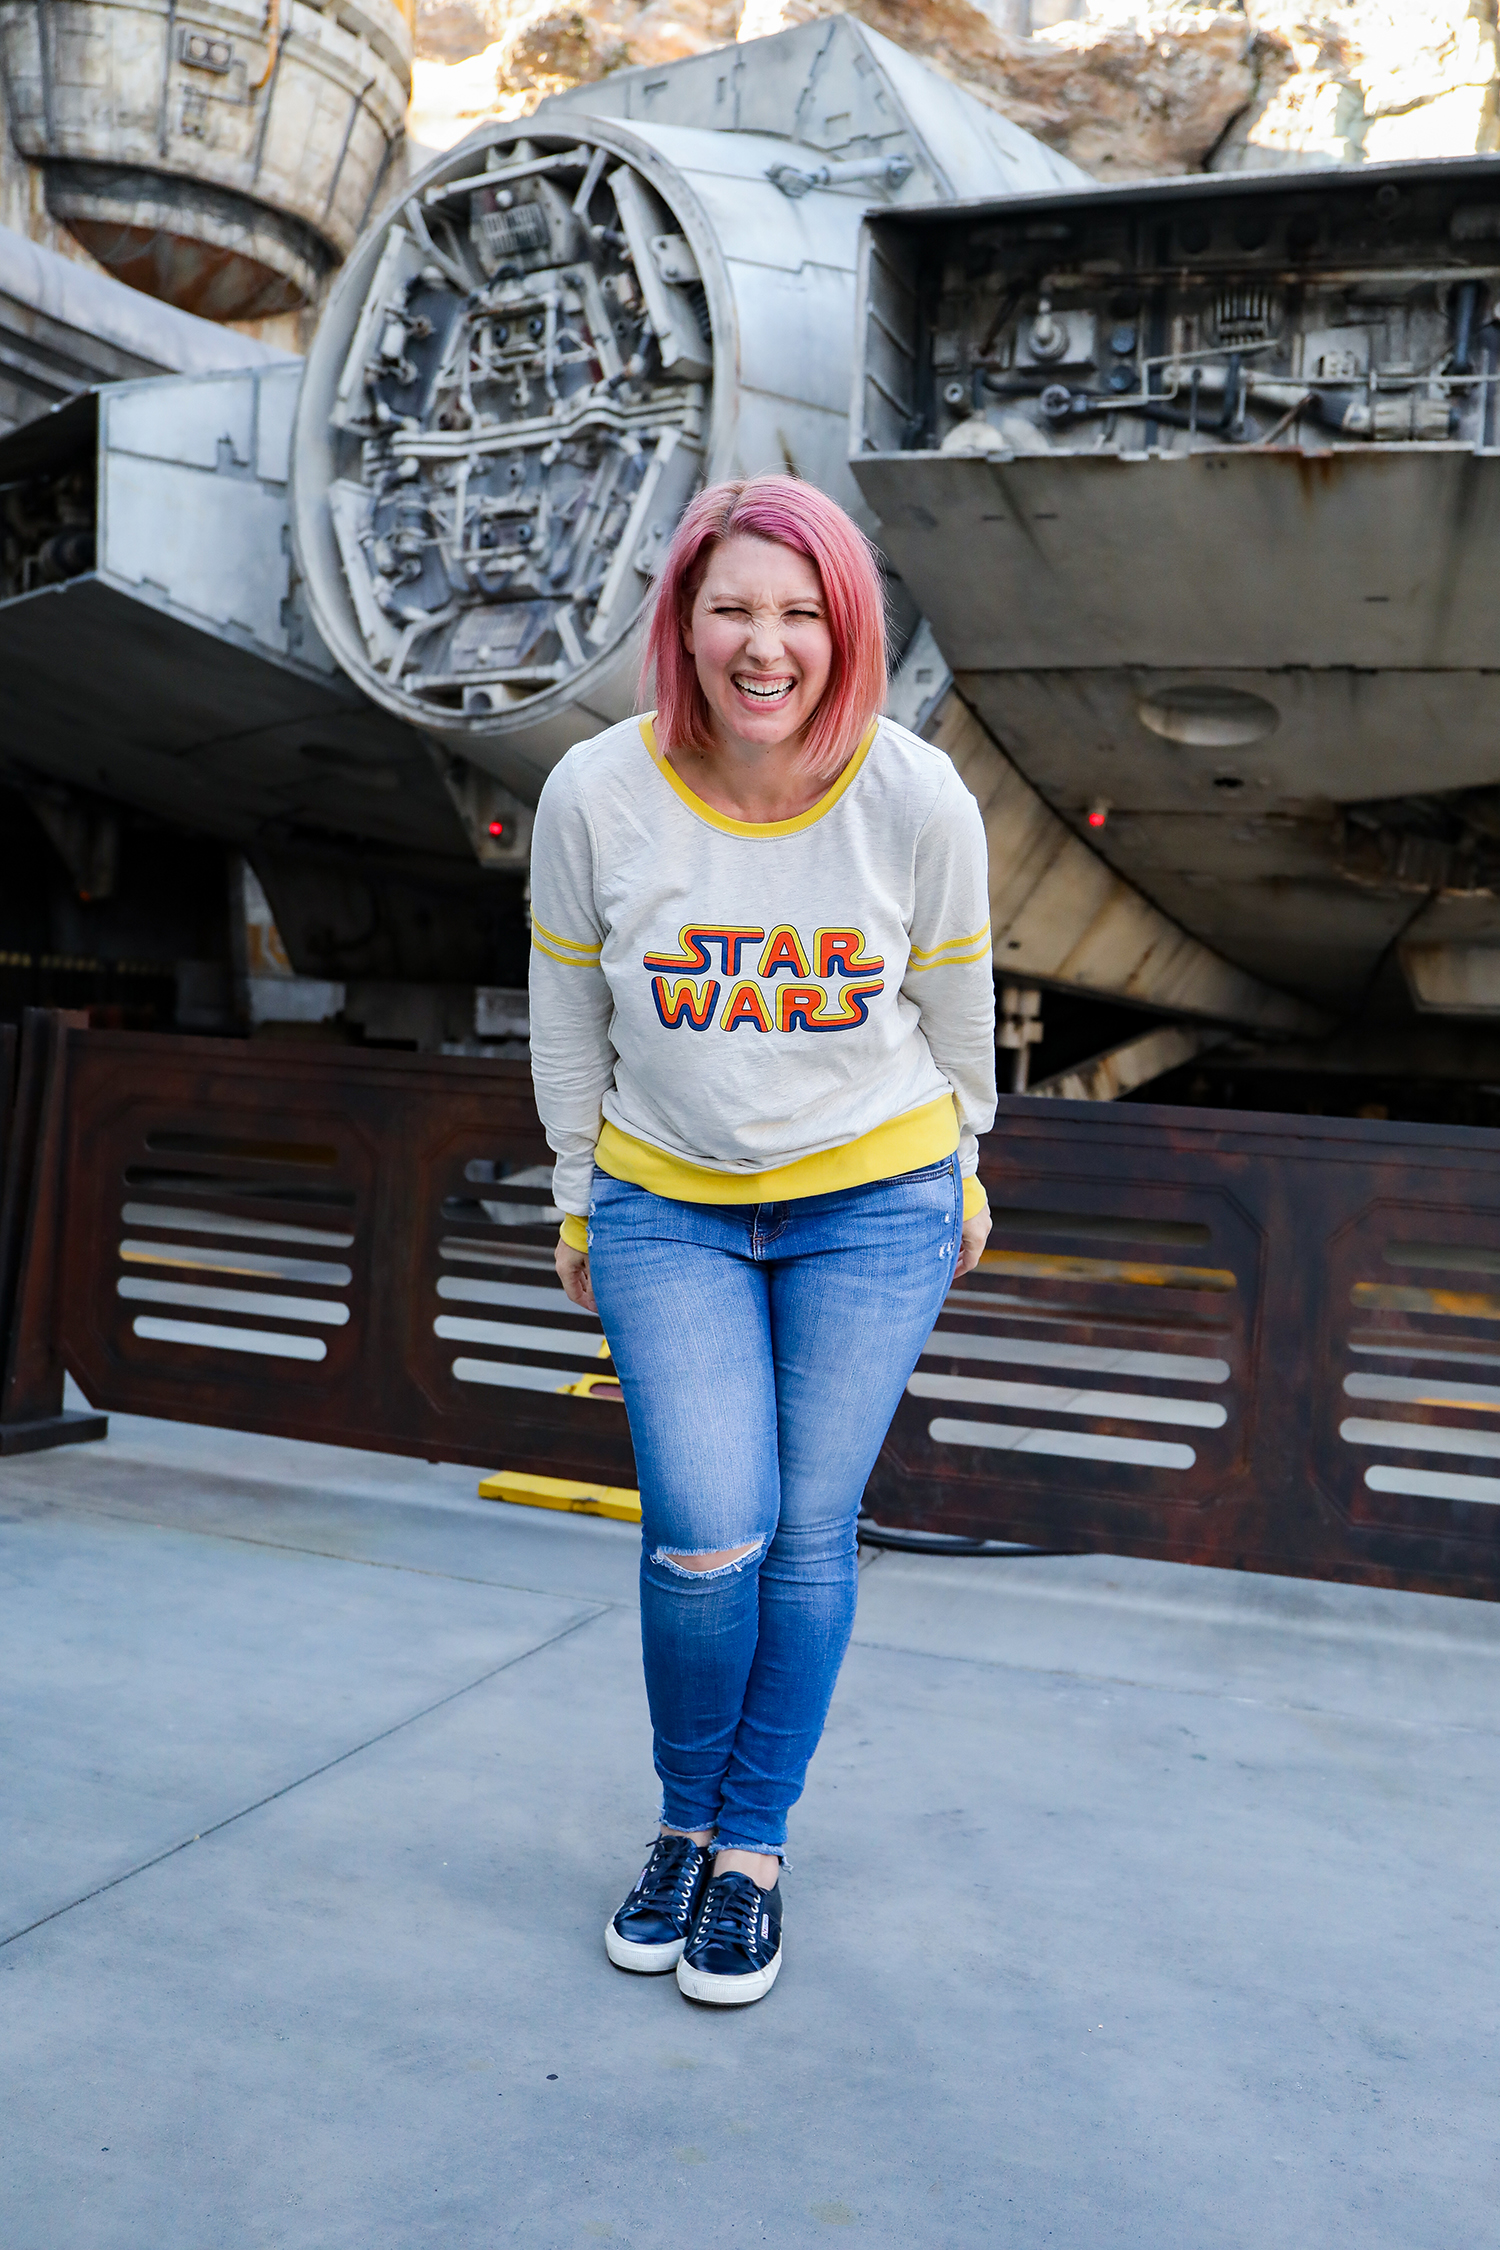 This Star Wars Logo Sweatshirt is PERFECT for visiting Galaxy's Edge!